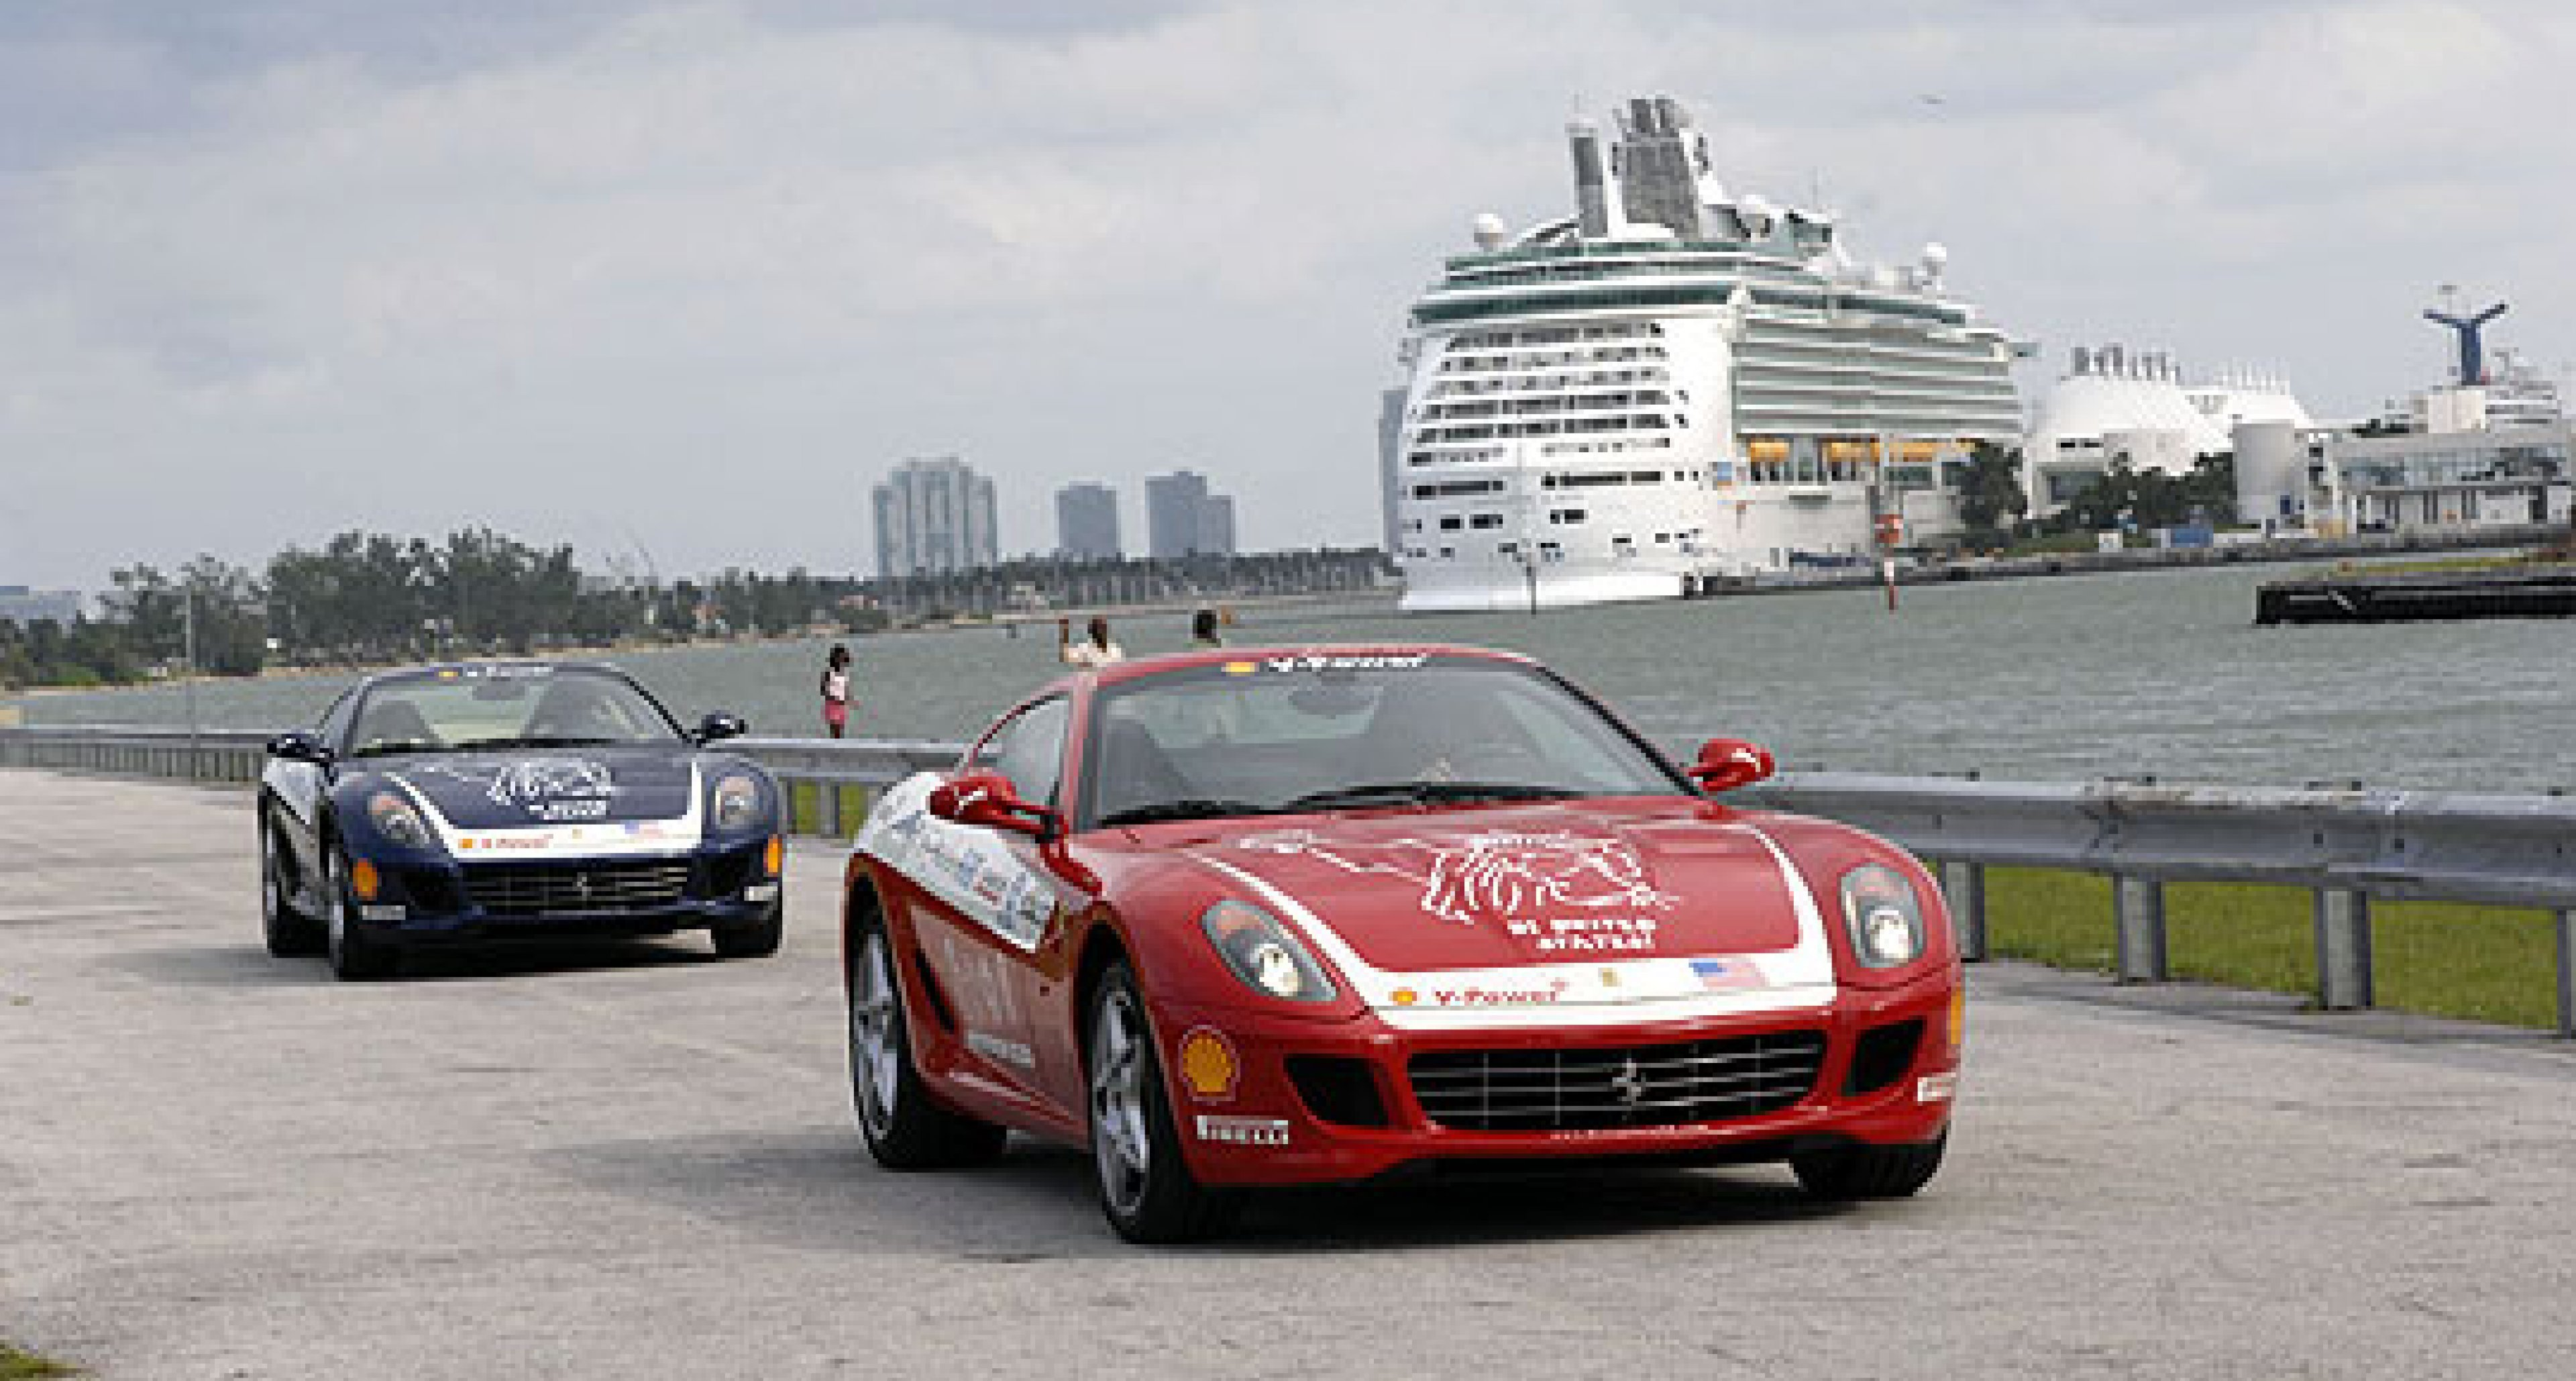 Ferrari Panamerican 20,000 - to the capital of the United States